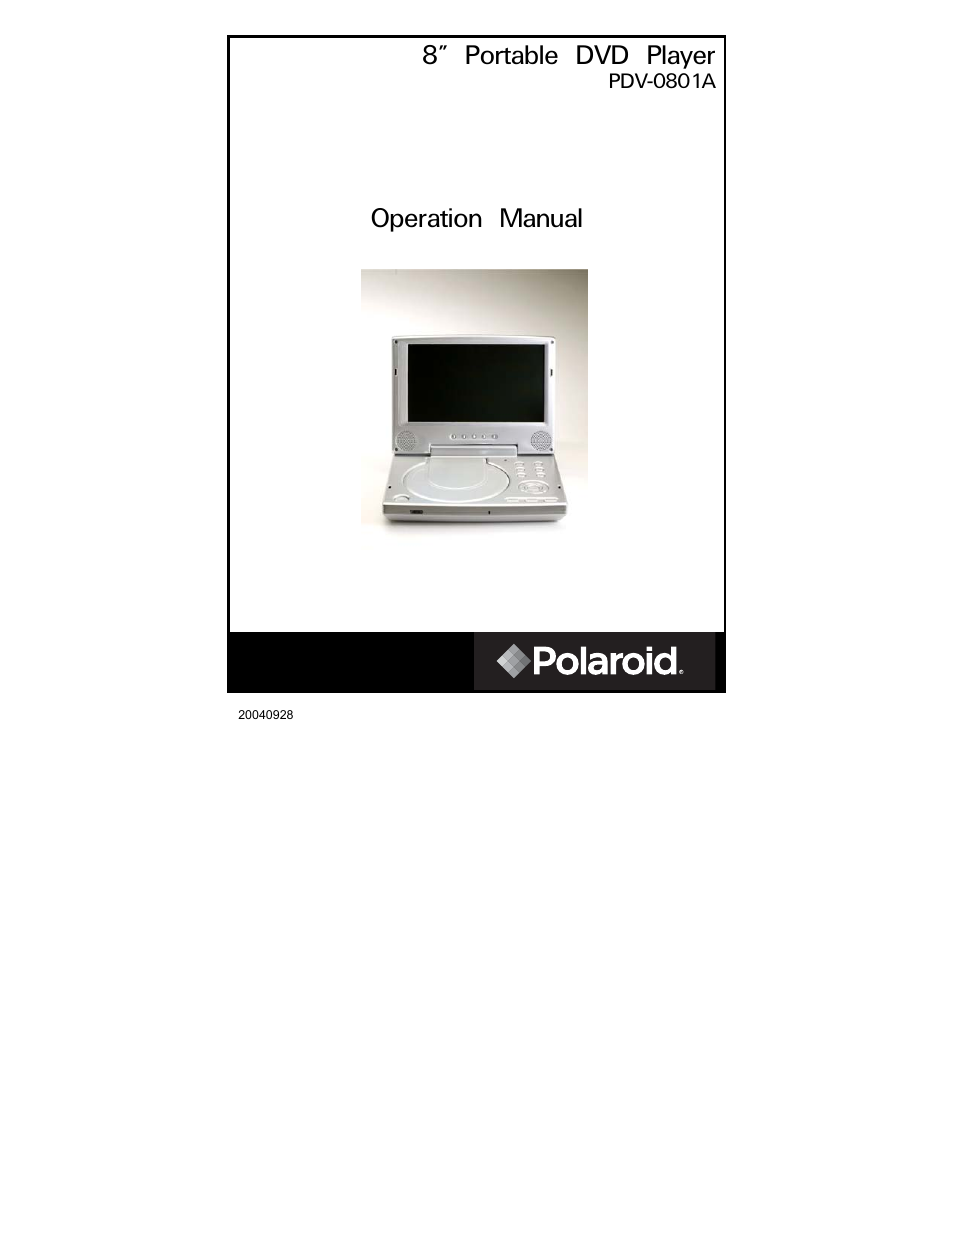 polaroid pdv 0801a user manual 31 pages rh manualsdir com Polaroid 7 Portable DVD Player Silver Polaroid Portable DVD Player Battery